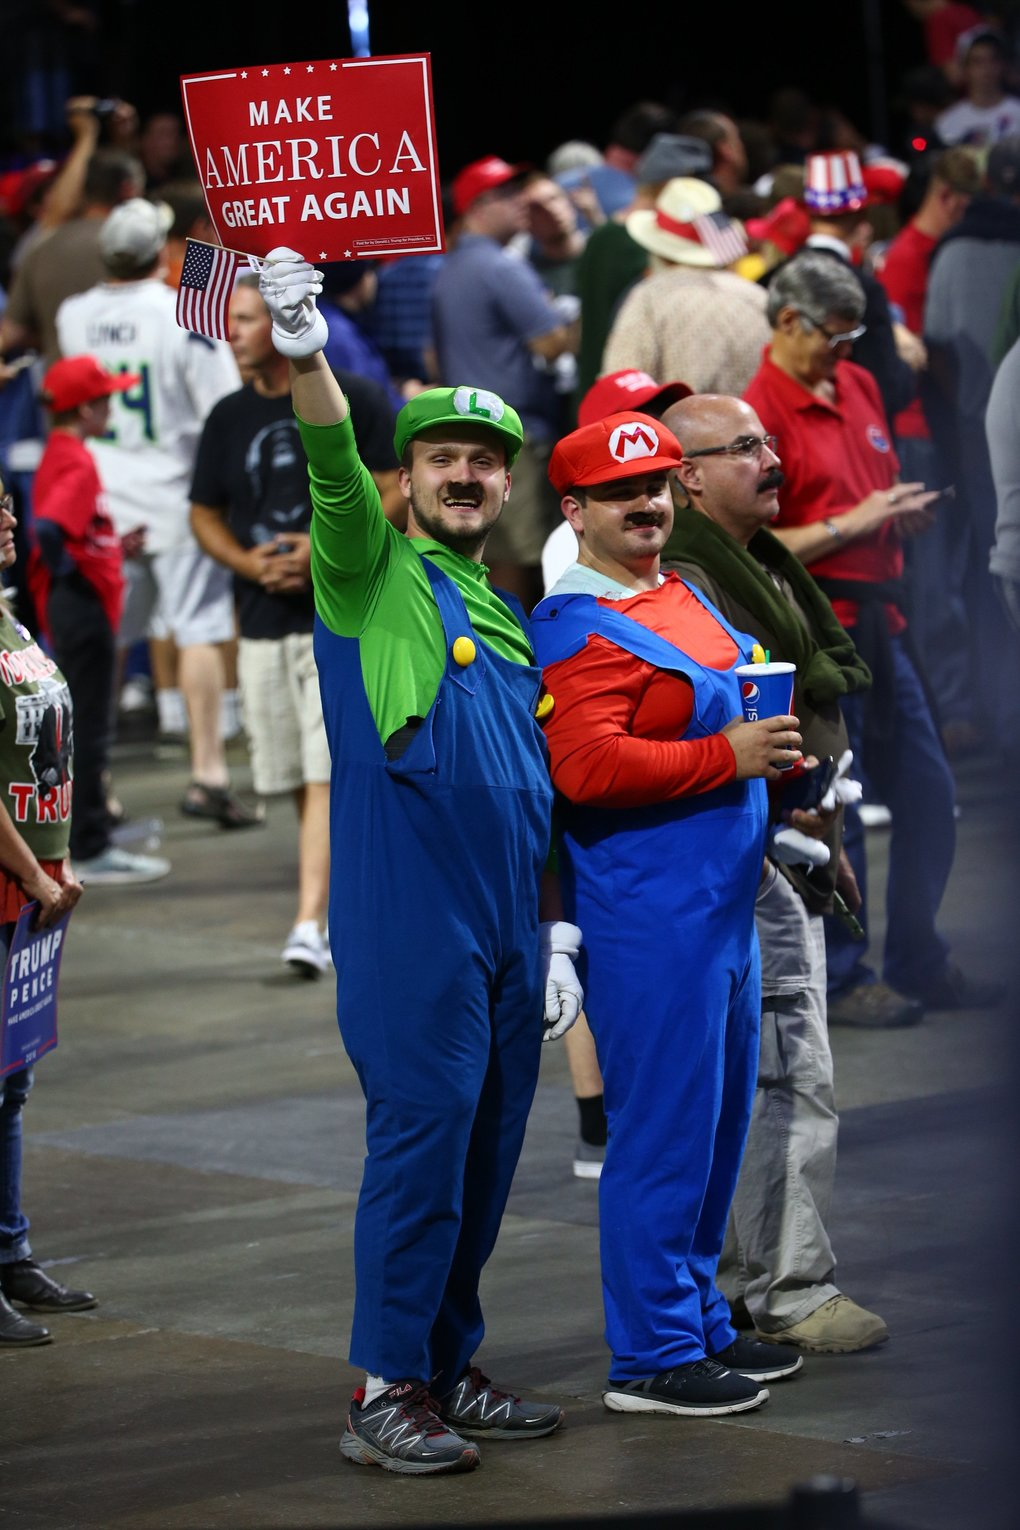 Donald Trump supporters dress as the Mario Bros.   (Dean Rutz / The Seattle Times)